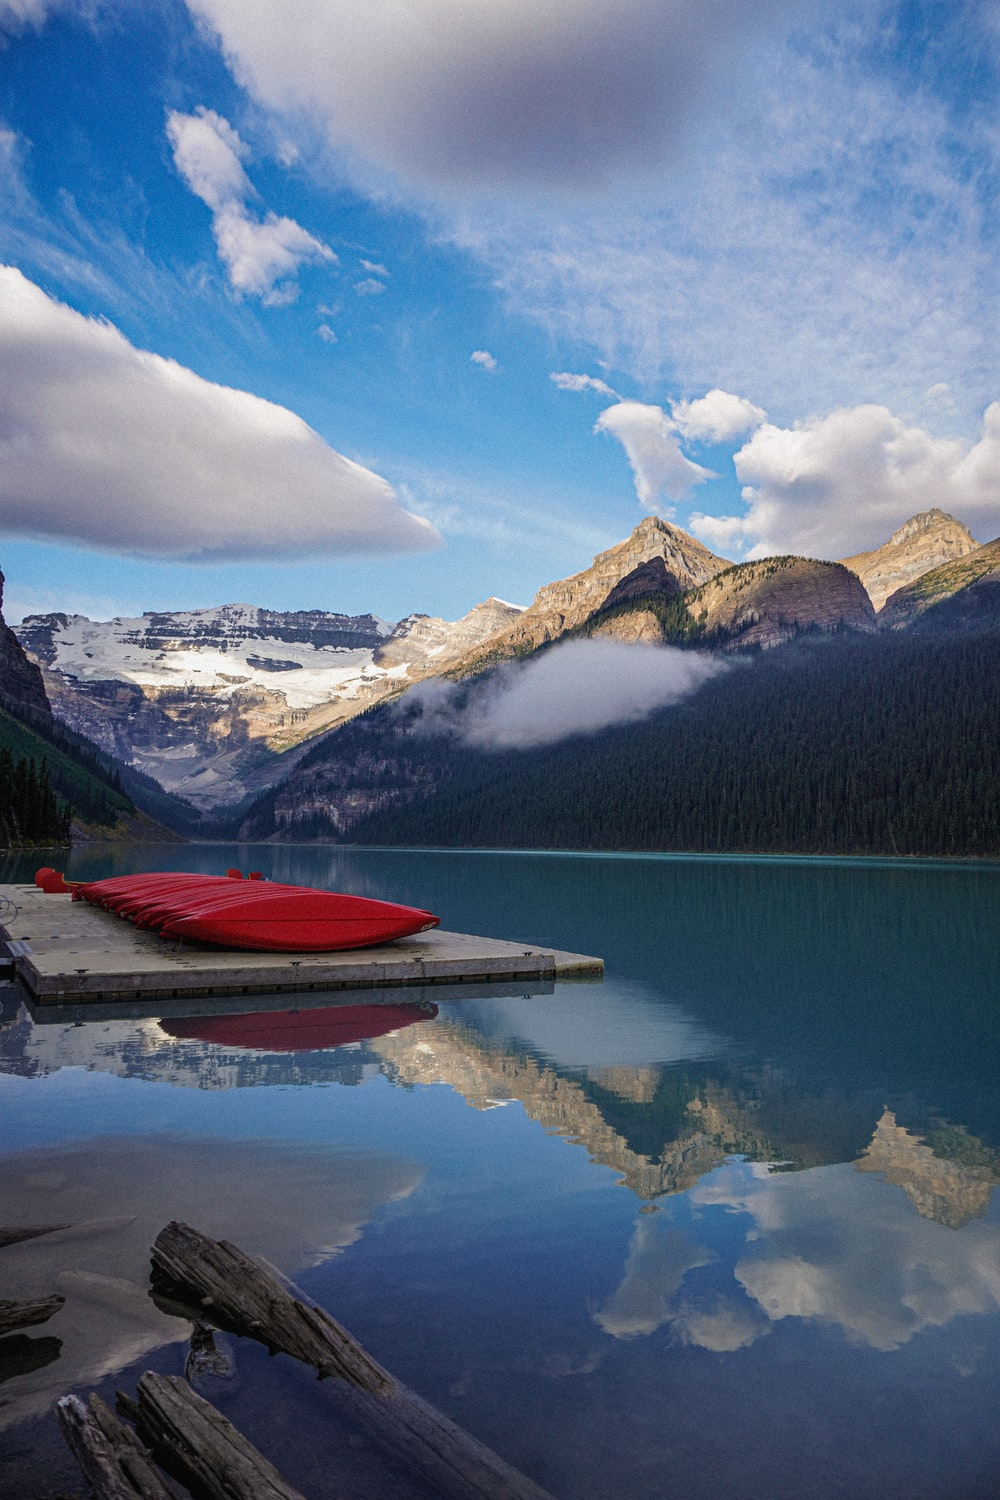 red boat on lake near snow covered mountain under blue sky and white clouds during daytime